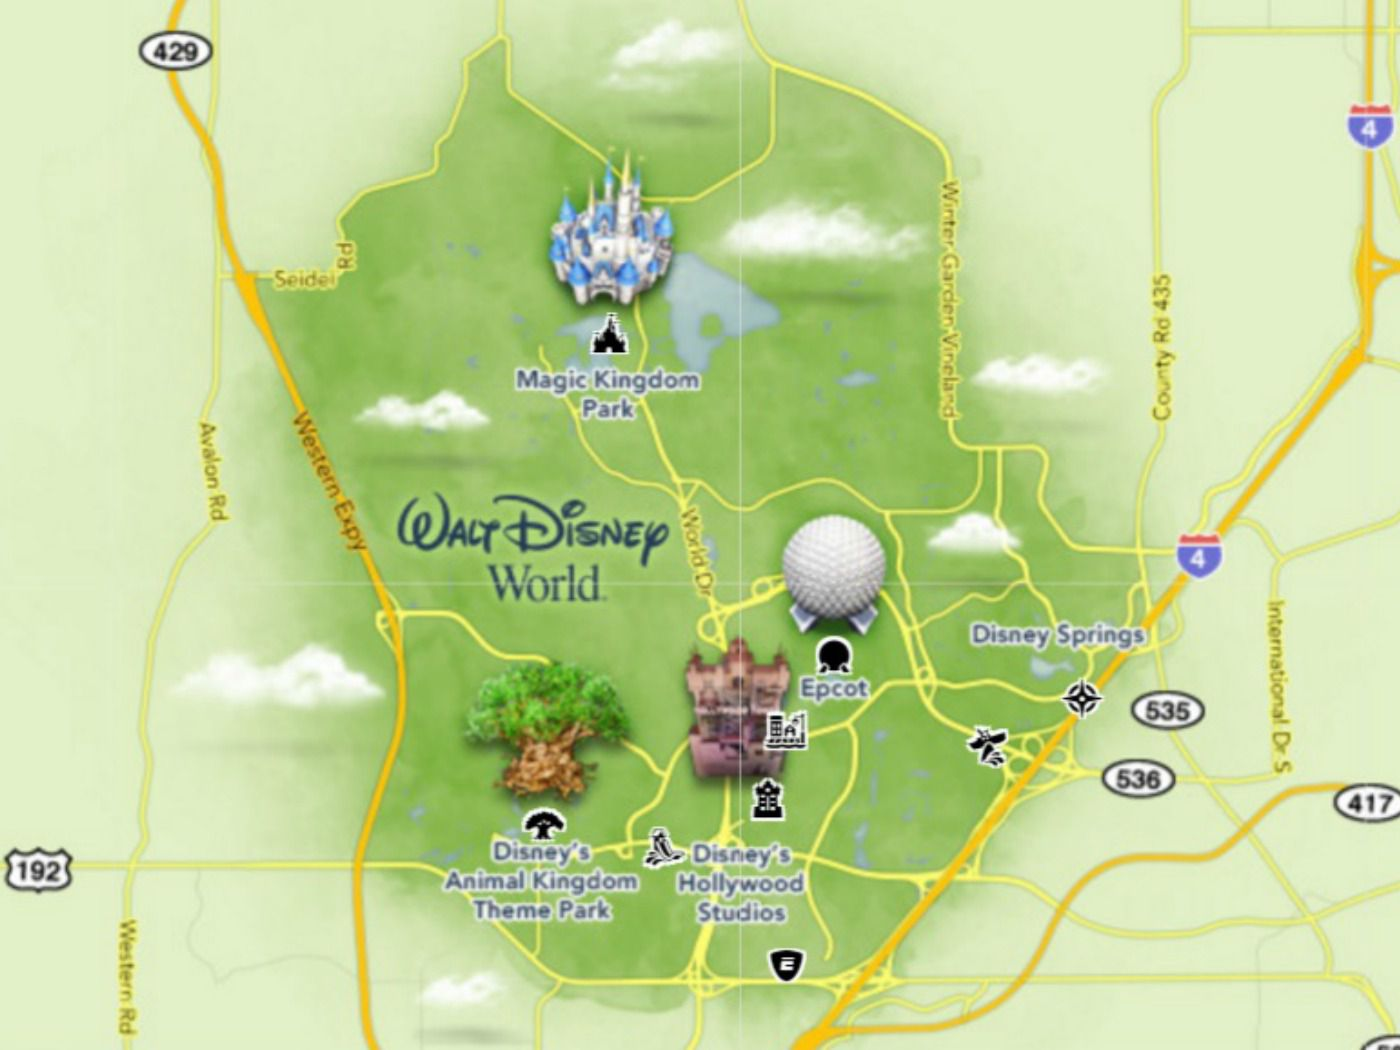 Maps of Walt Disney World's Parks and Resorts Map French Quarter Hotels on midtown manhattan hotels map, french quarter district map, large french quarter map, hotels near grand canyon map, french quarter street map, riverside hotels map, pittsburgh hotels map, french quarter property map, french quarter interactive map, new orleans hotels map, michigan avenue hotels map, st. martin french quarter map, downtown cleveland hotels map, charleston hotels map, avondale hotels map, denver hotels map, french quarter restaurant map, fisherman's wharf hotels map, french quarter walking map, best french quarter map,